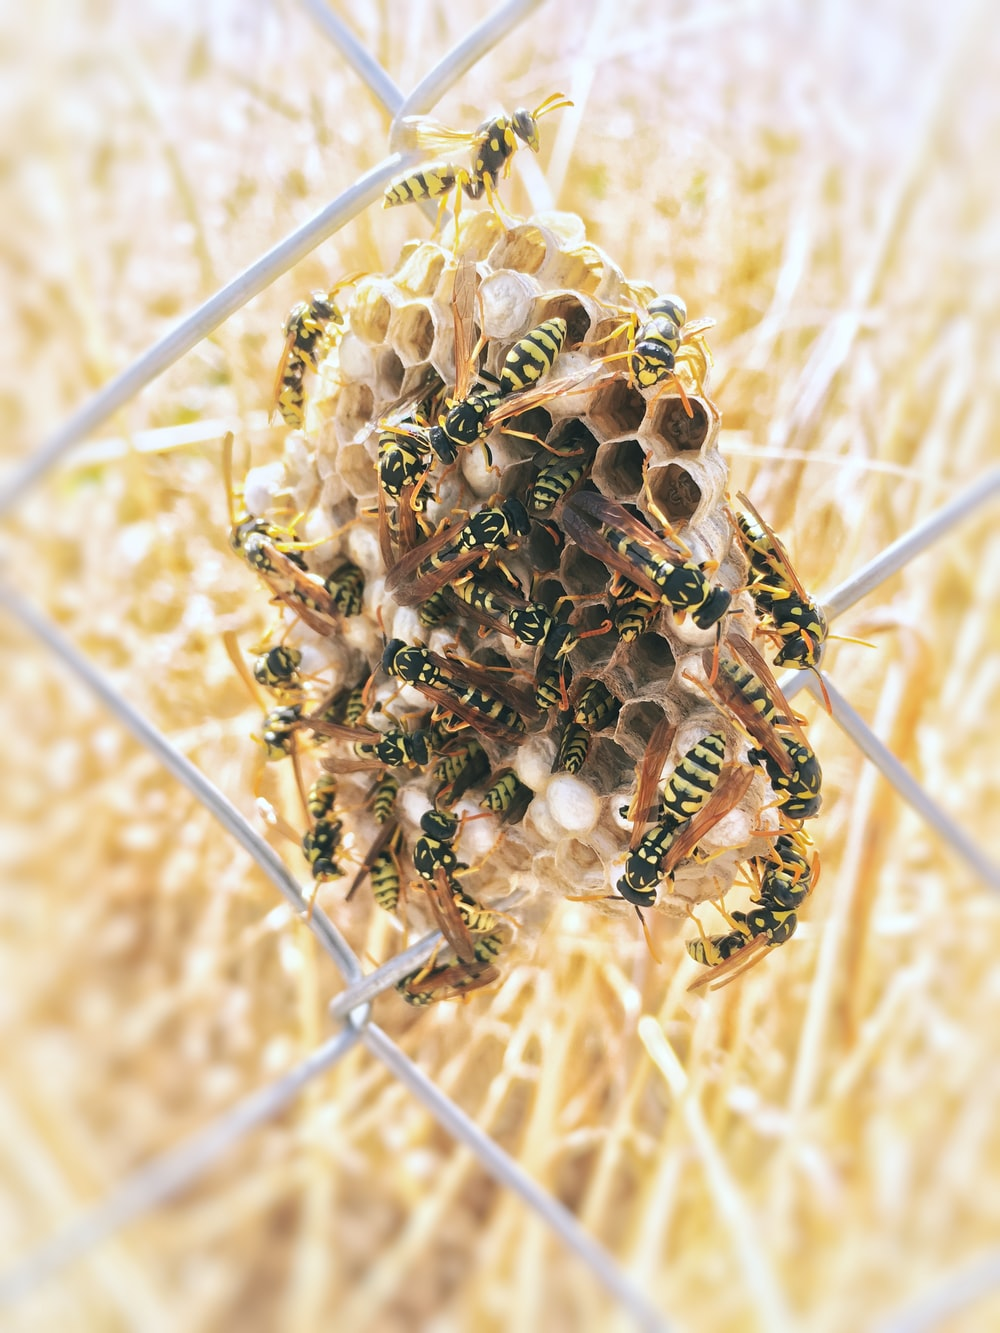 swarm of yellowjacket wasp on hive